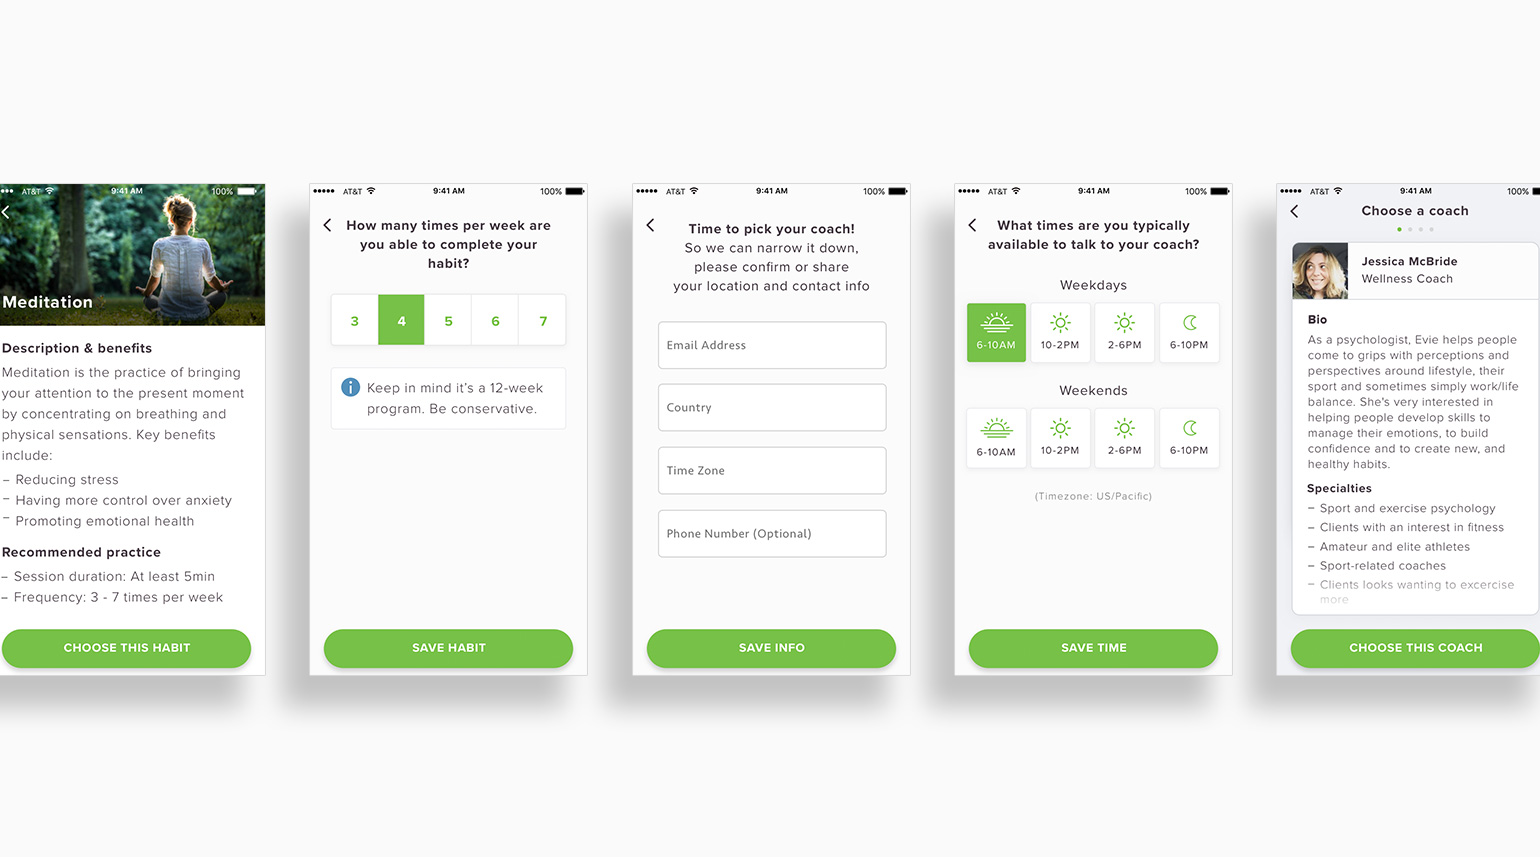 Visual user flow for users to customize their wellness program and set milestone habit tracking.